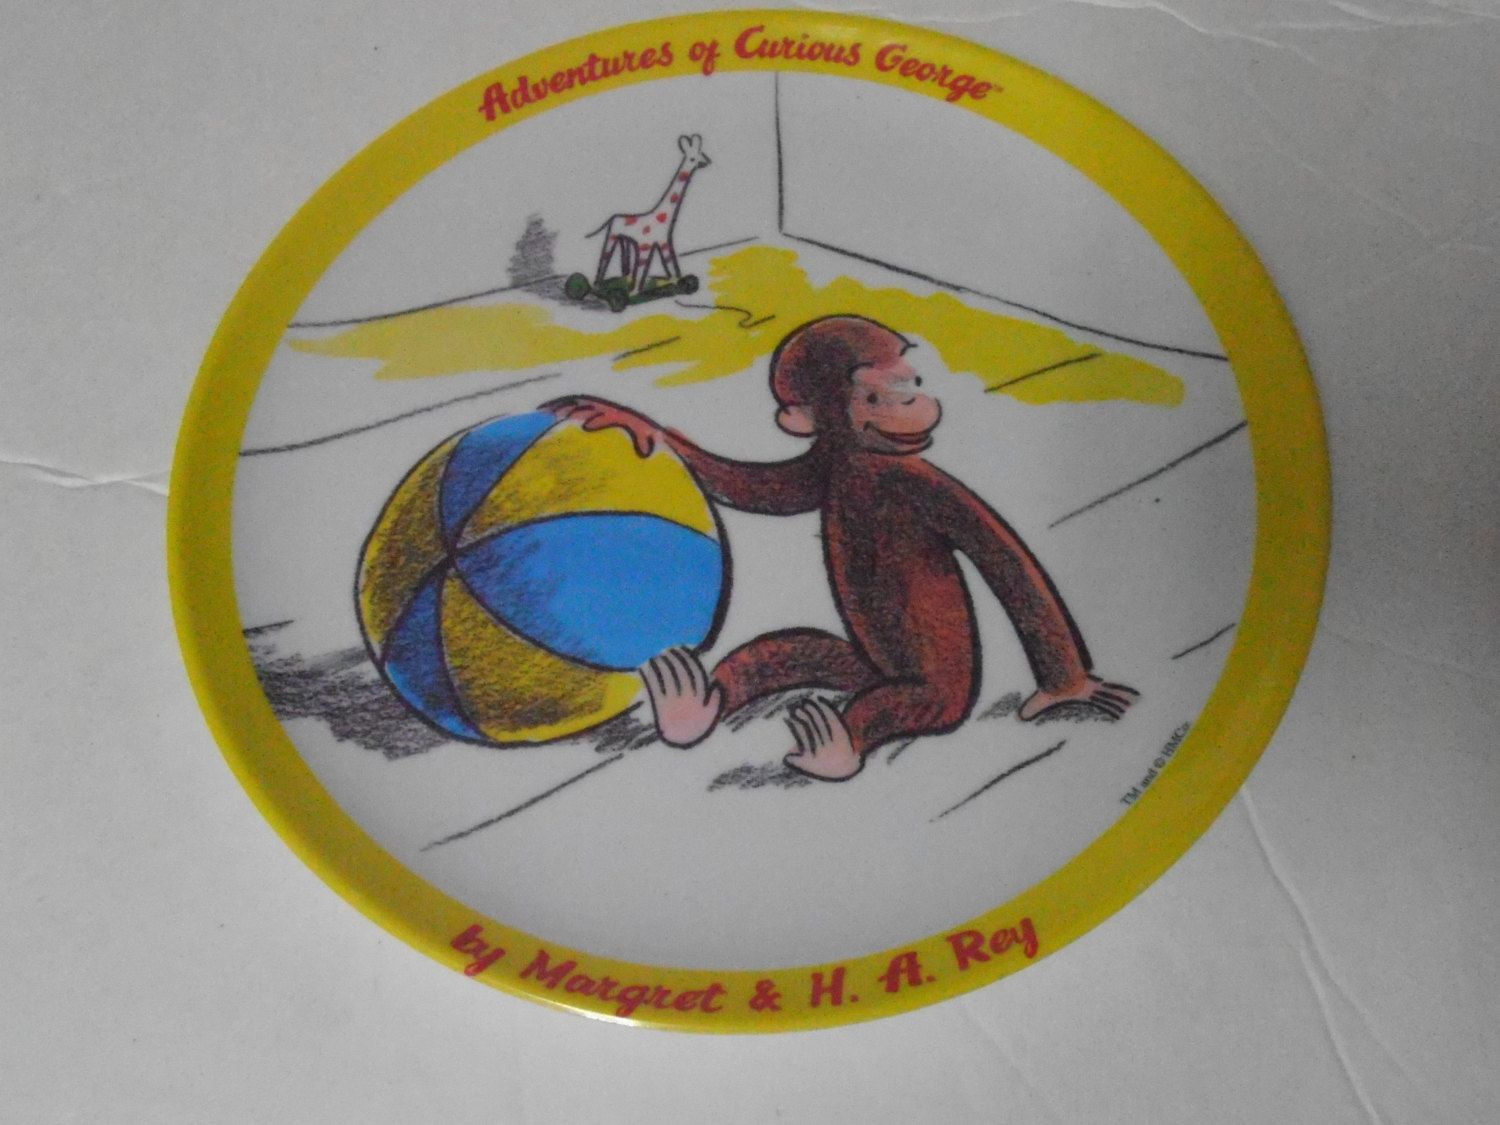 Adventures of Curious George Yellow Ball Toys Plate Plastic Melamine by tjmccarty on Etsy